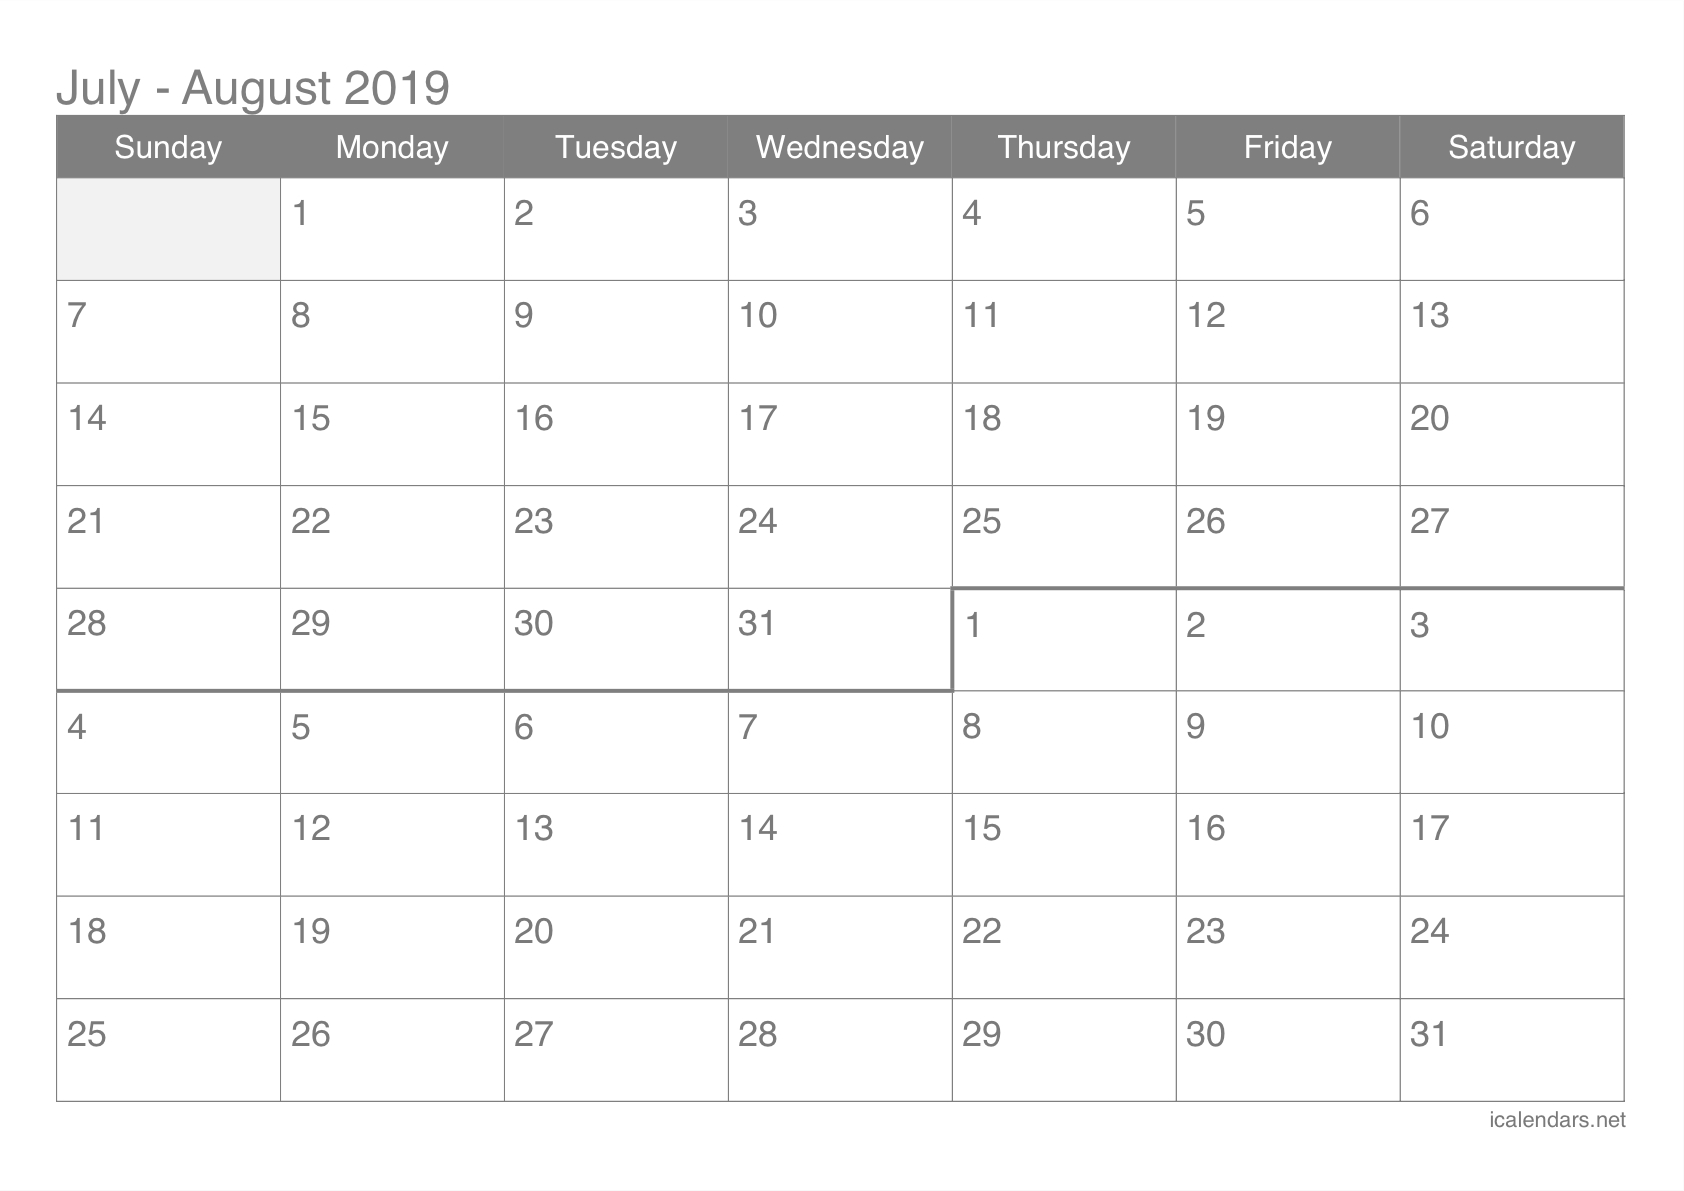 July And August 2019 Printable Calendar - Icalendars within Calendar Blanks August Through October 2019